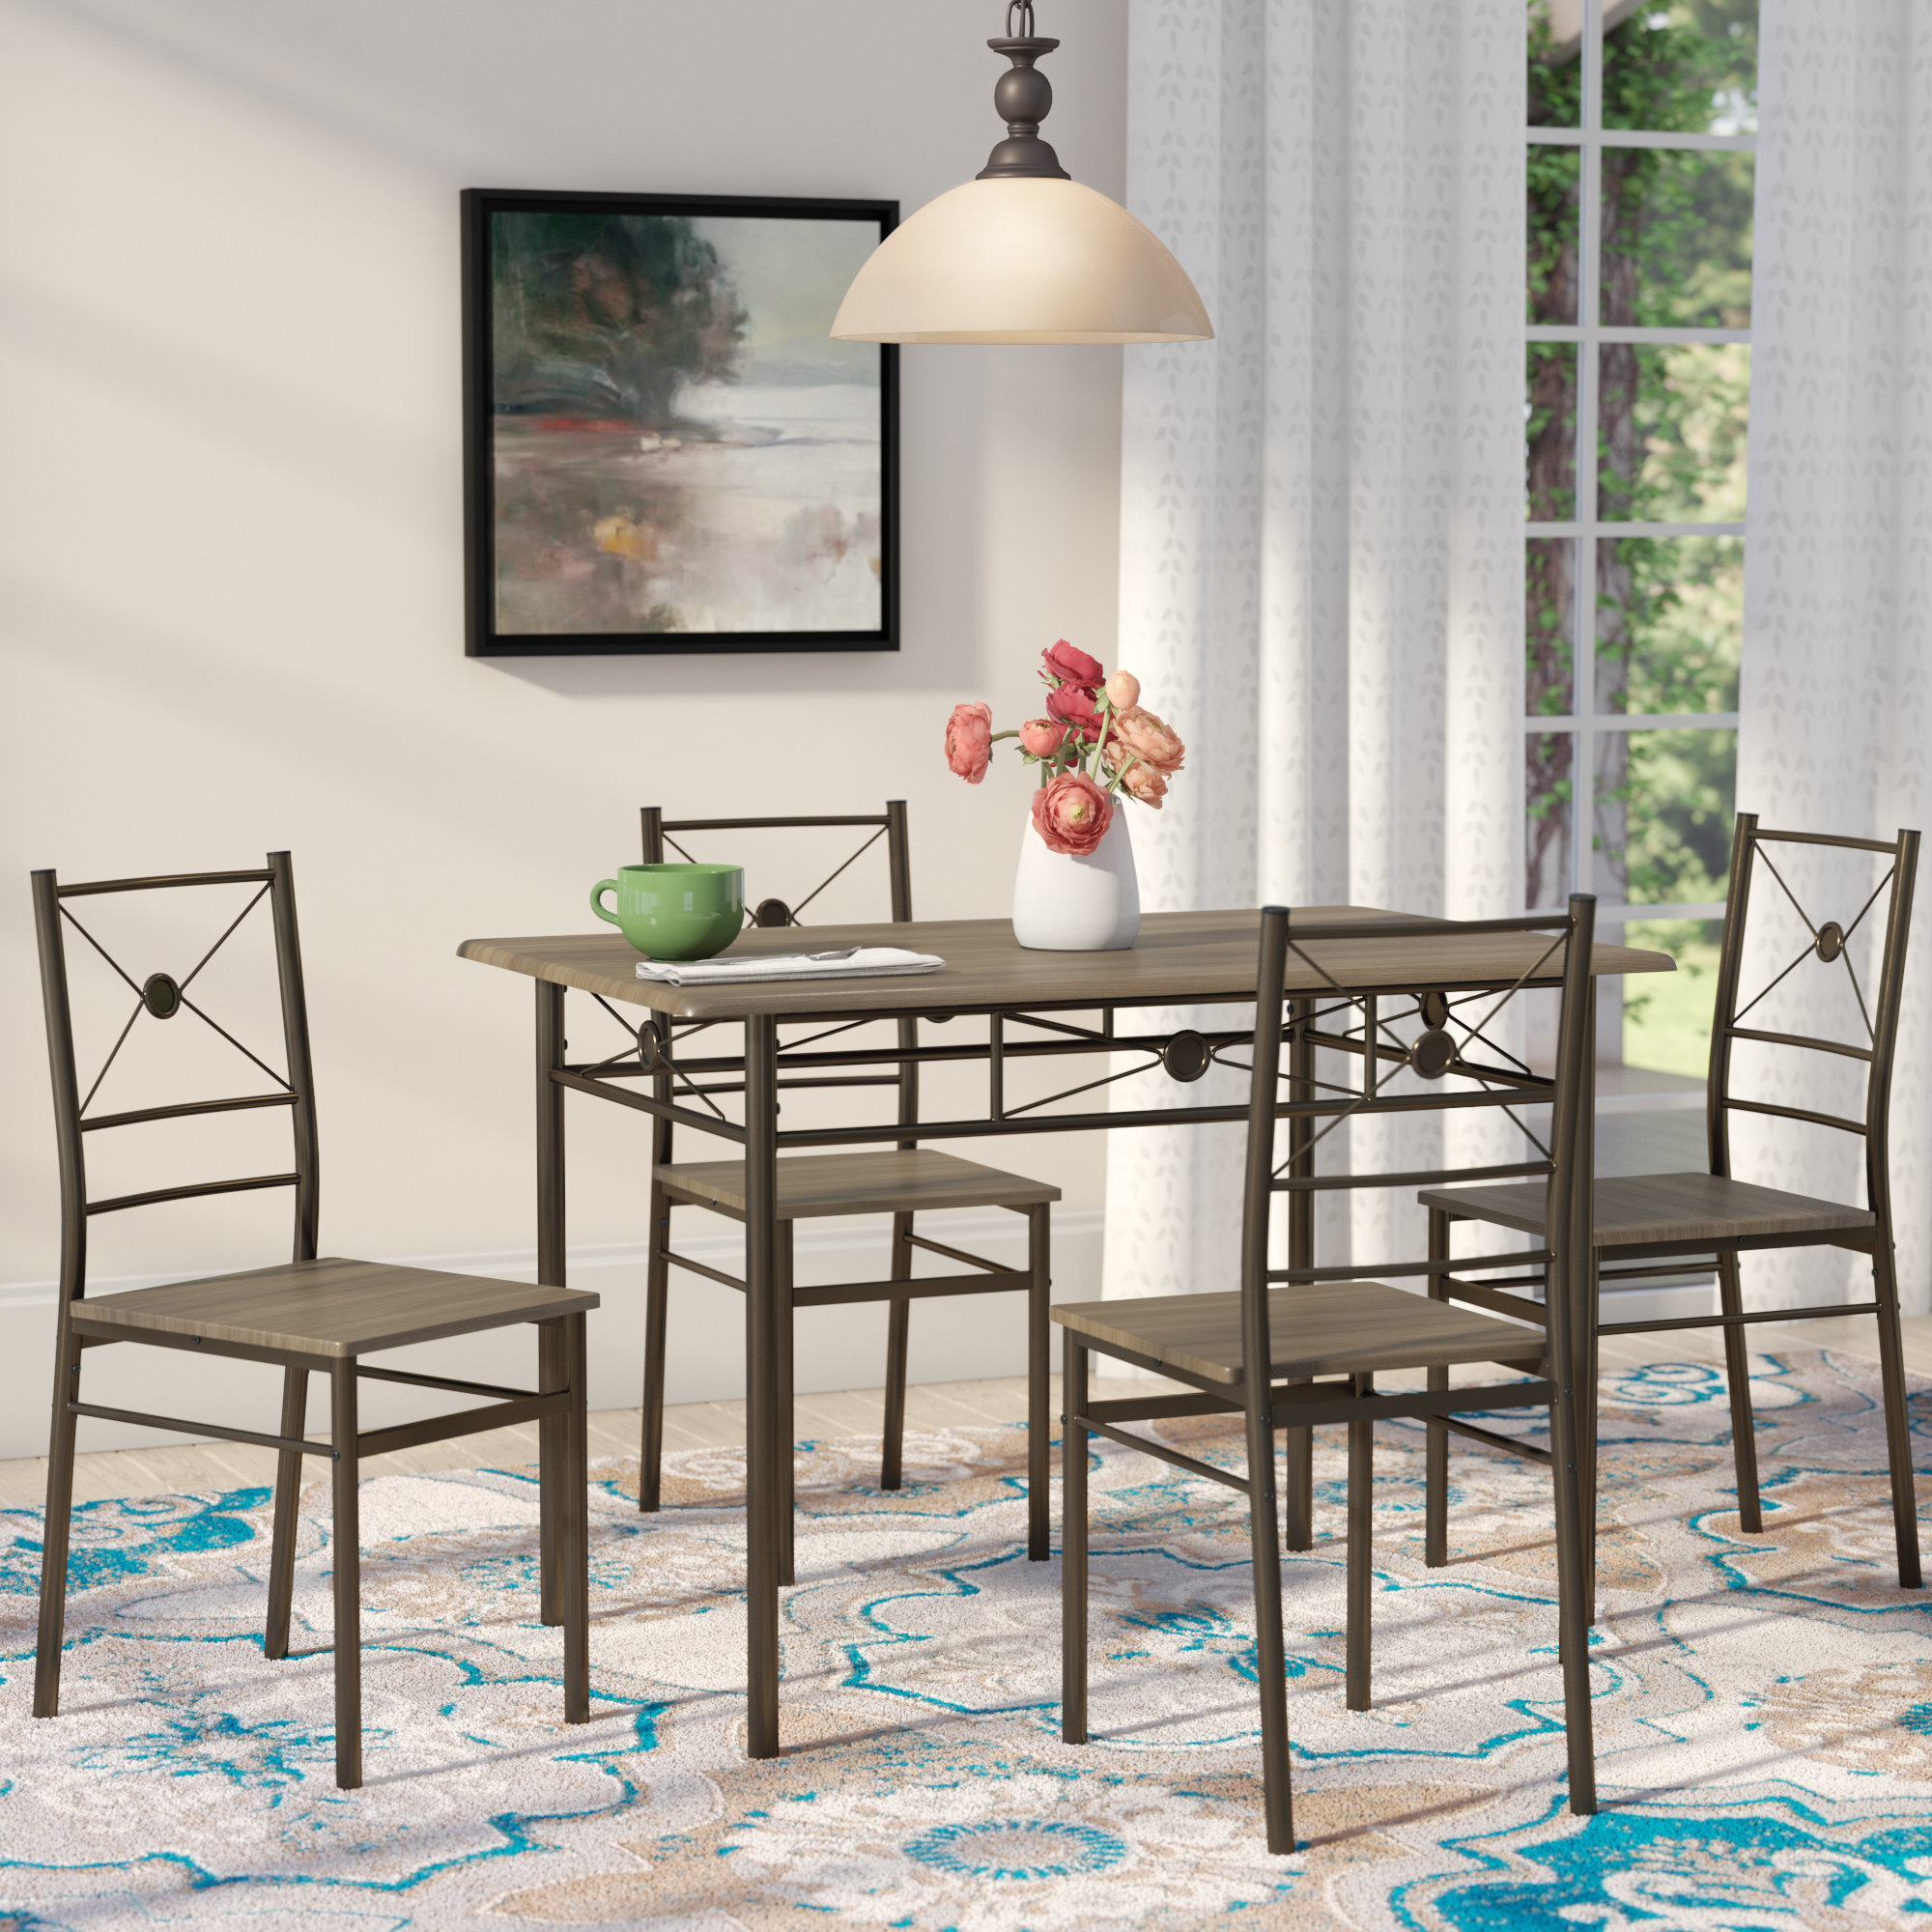 Taulbee 5 Piece Dining Sets Regarding Most Current Andover Mills Kieffer 5 Piece Dining Set & Reviews (View 14 of 20)